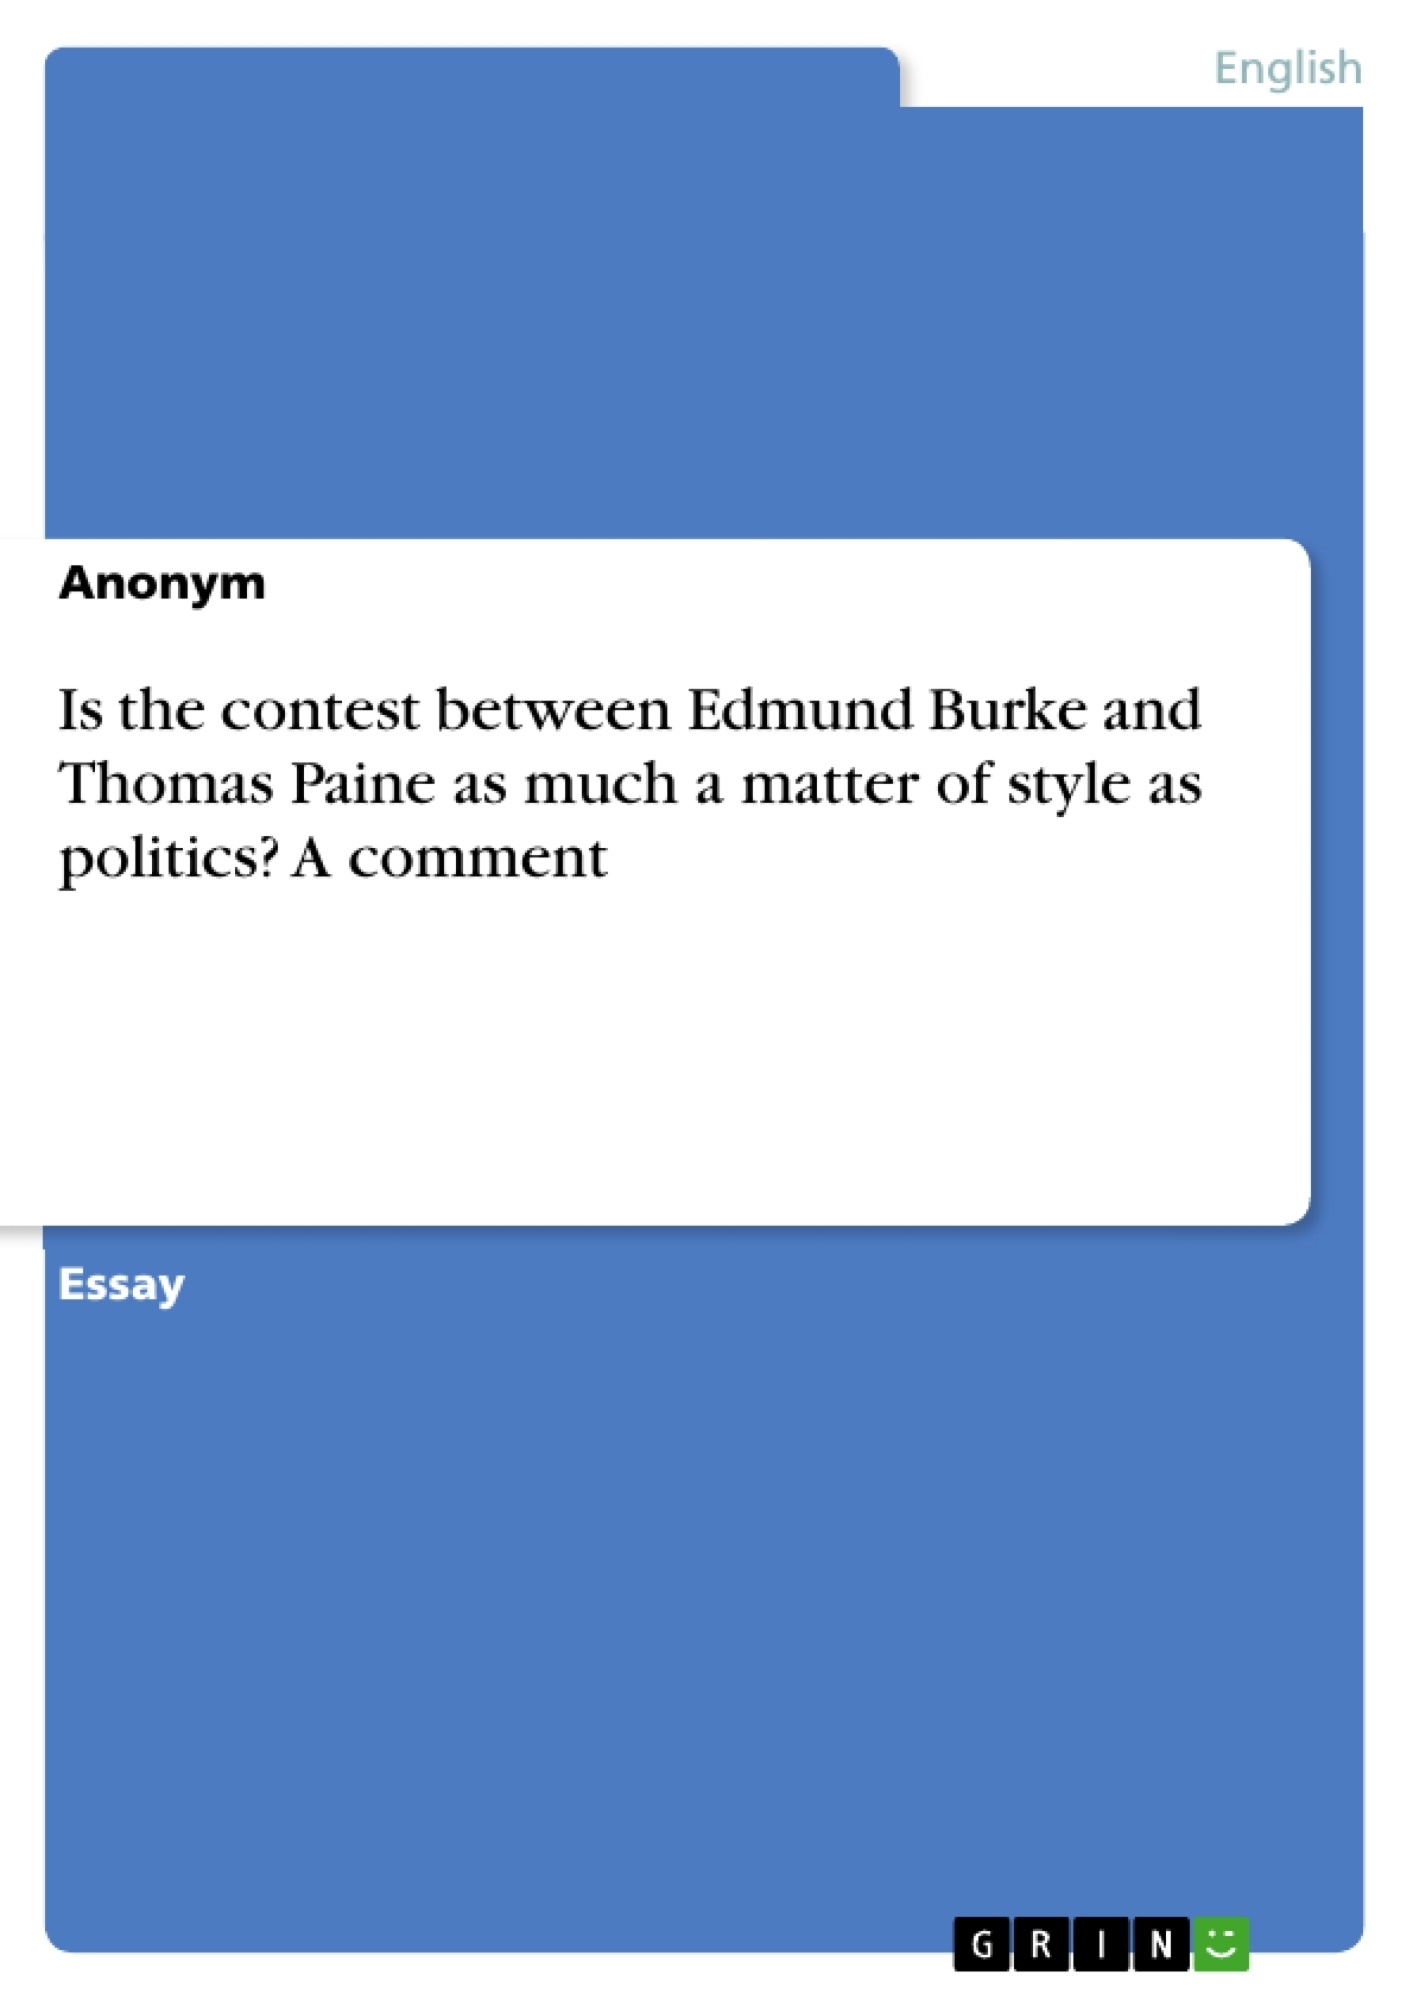 Title: Is the contest between Edmund Burke and Thomas Paine as much a matter of style as politics? A comment